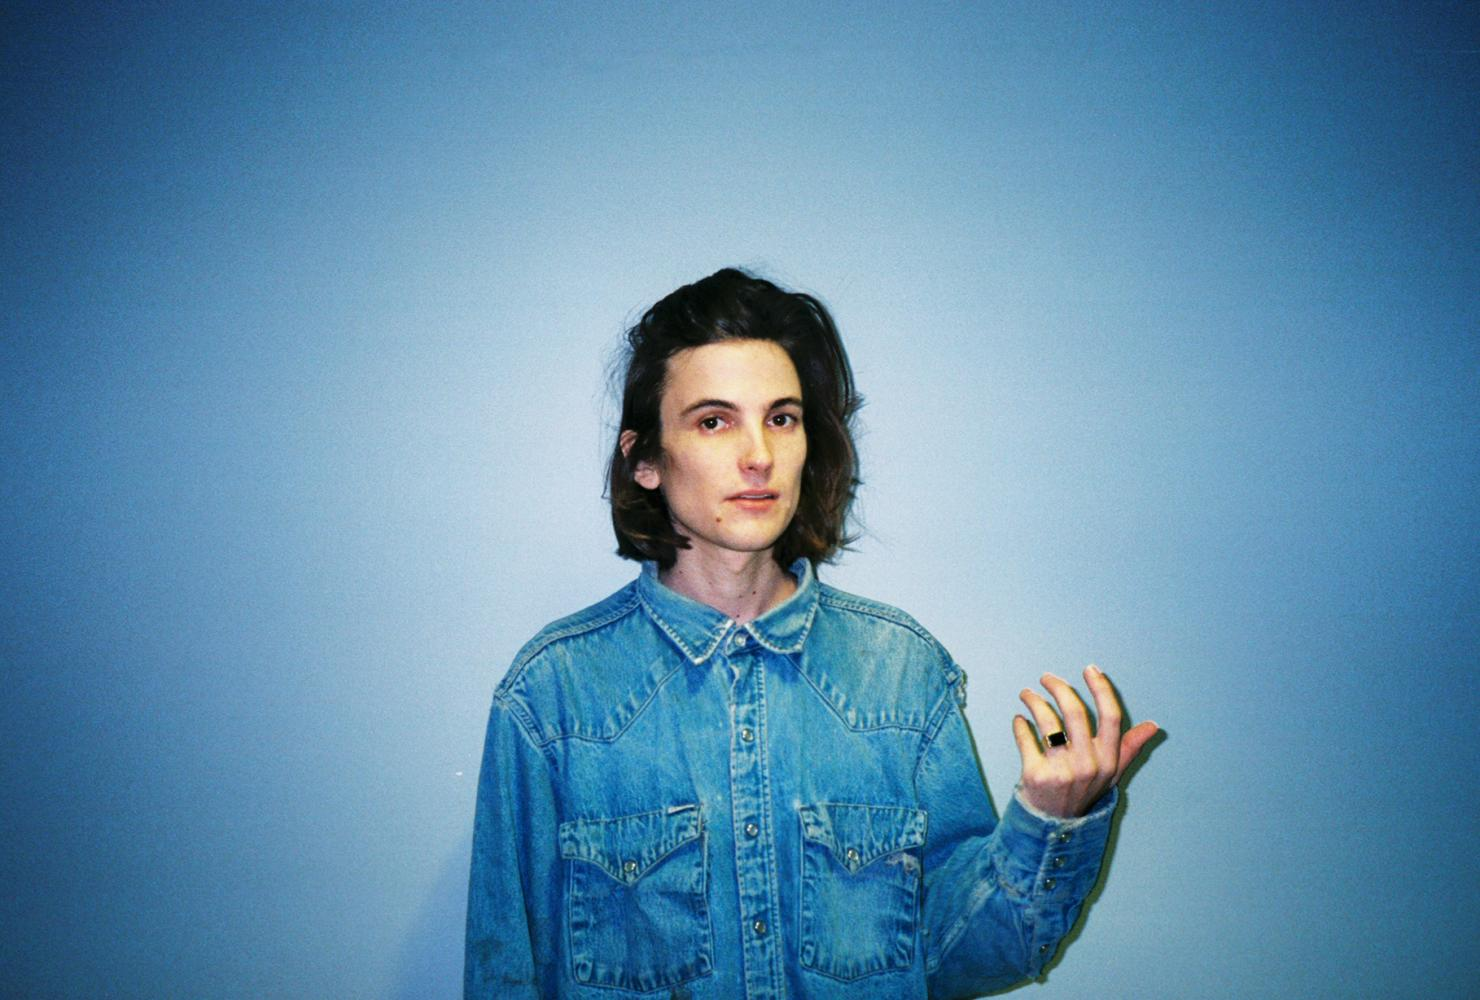 DIIV's lead singer Zachary Cole Smith.